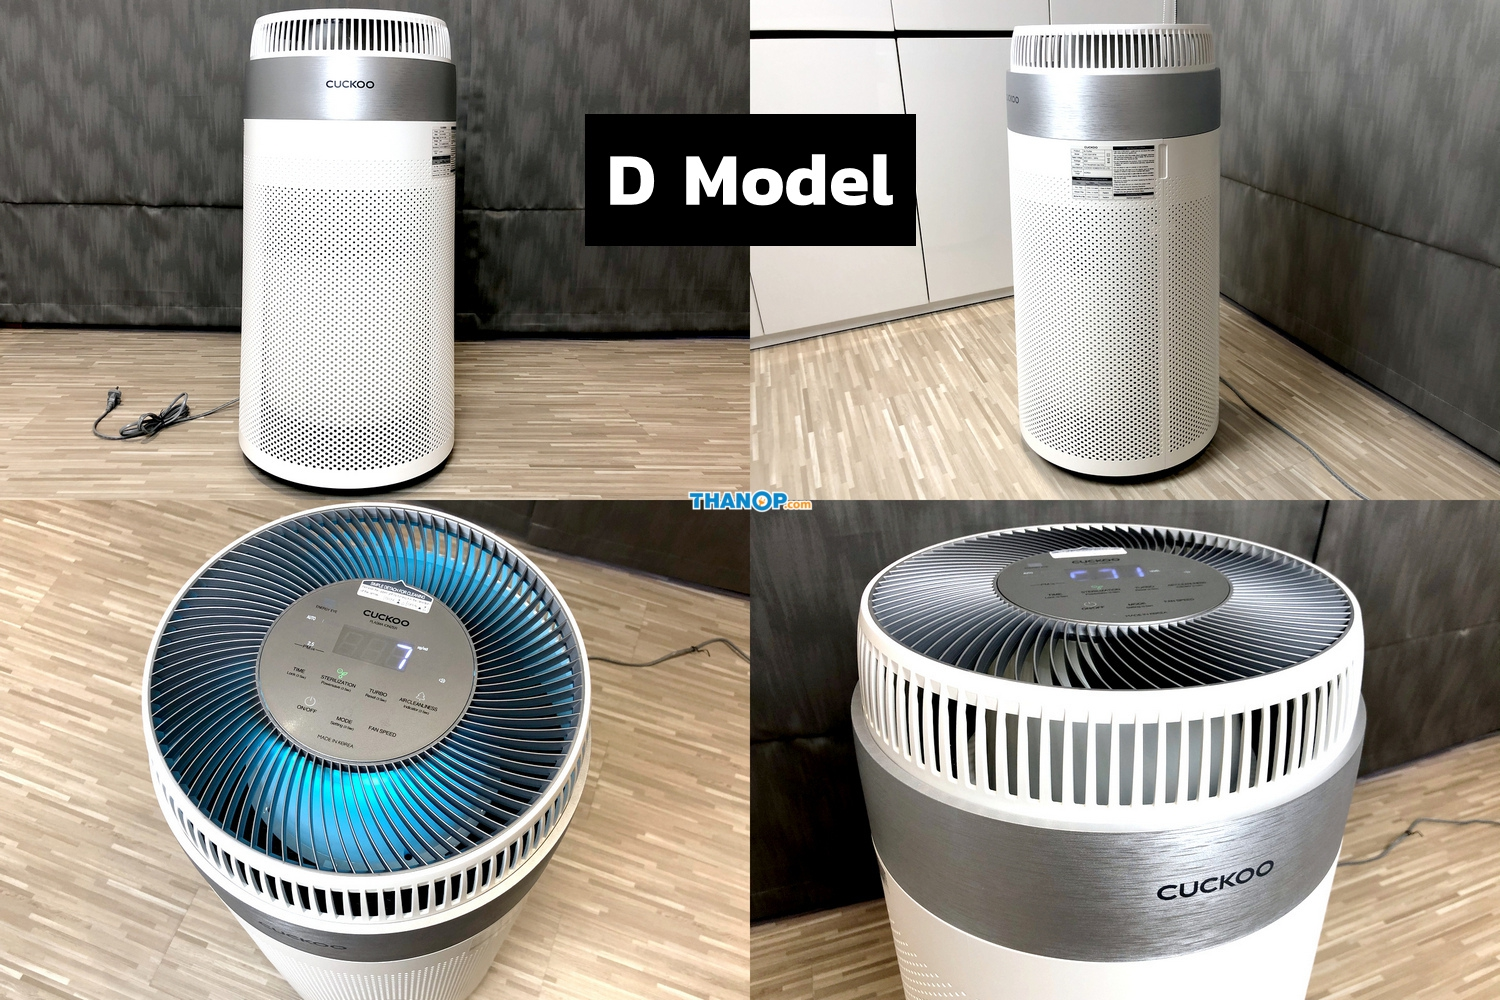 CUCKOO Air Purifier Power Consumption Test